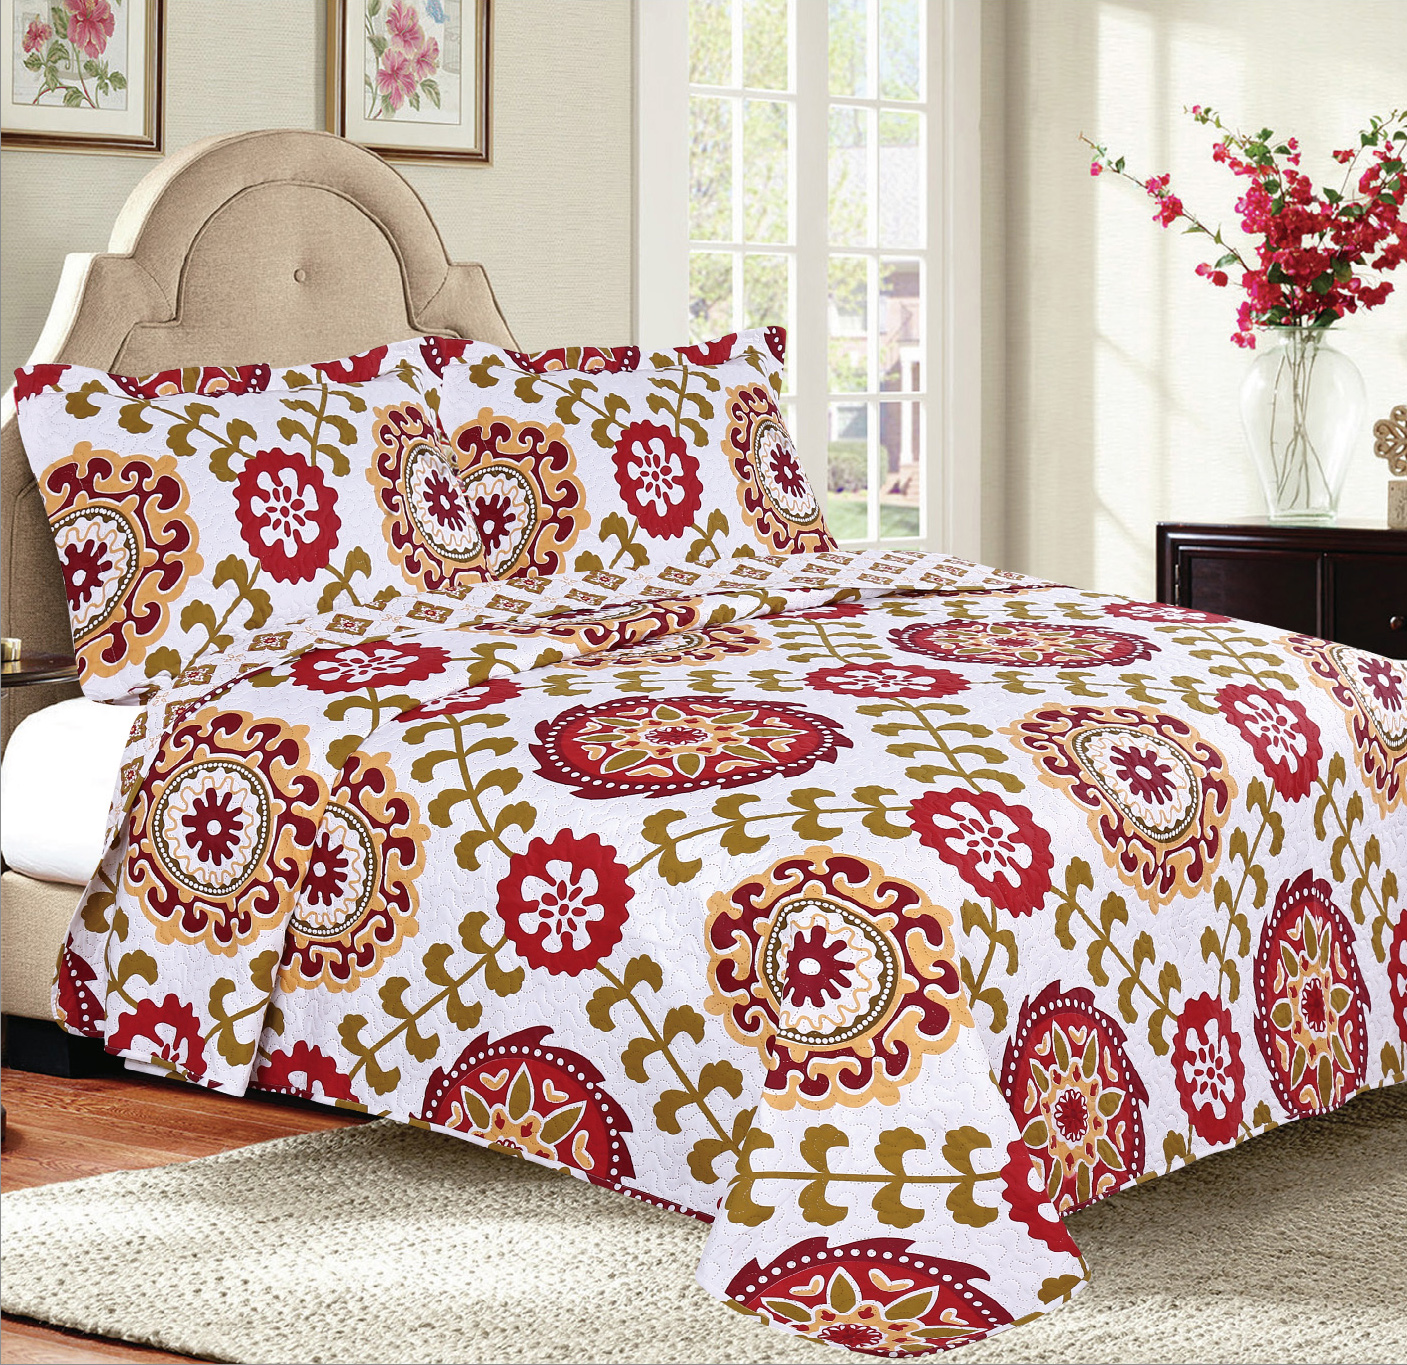 3-Piece Modern Bedspread Coverlet Quilt Set with Pillow Shams White Red by Woven Trends